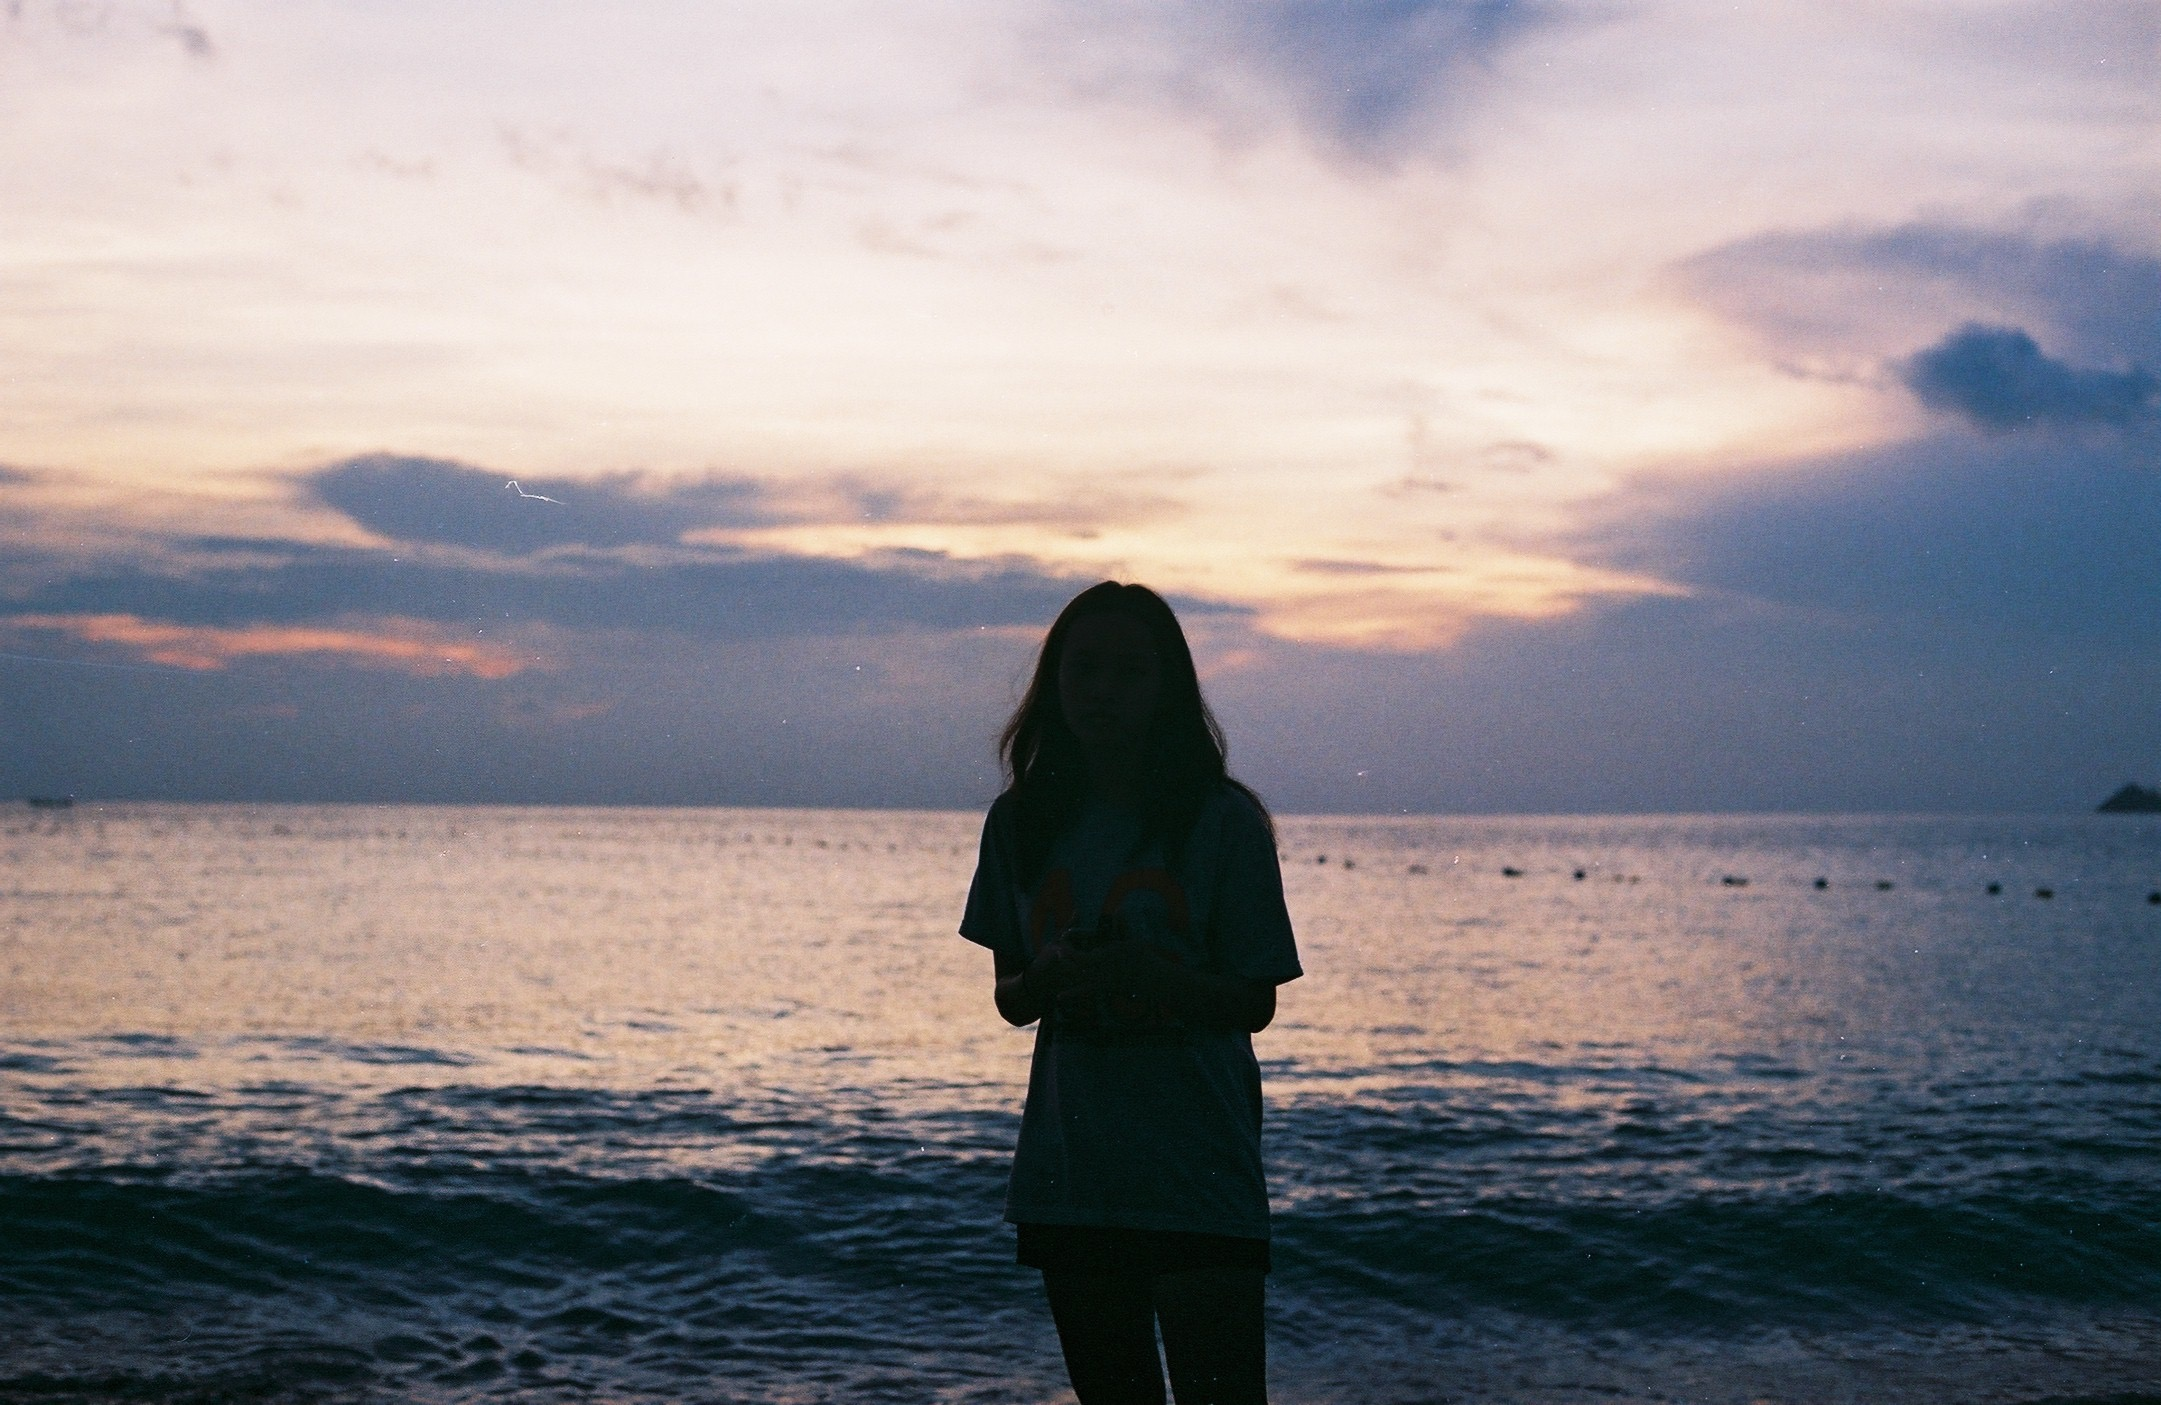 Fall Evening Wallpapers Silhouette Of Woman Standing Near Large Body Of Water